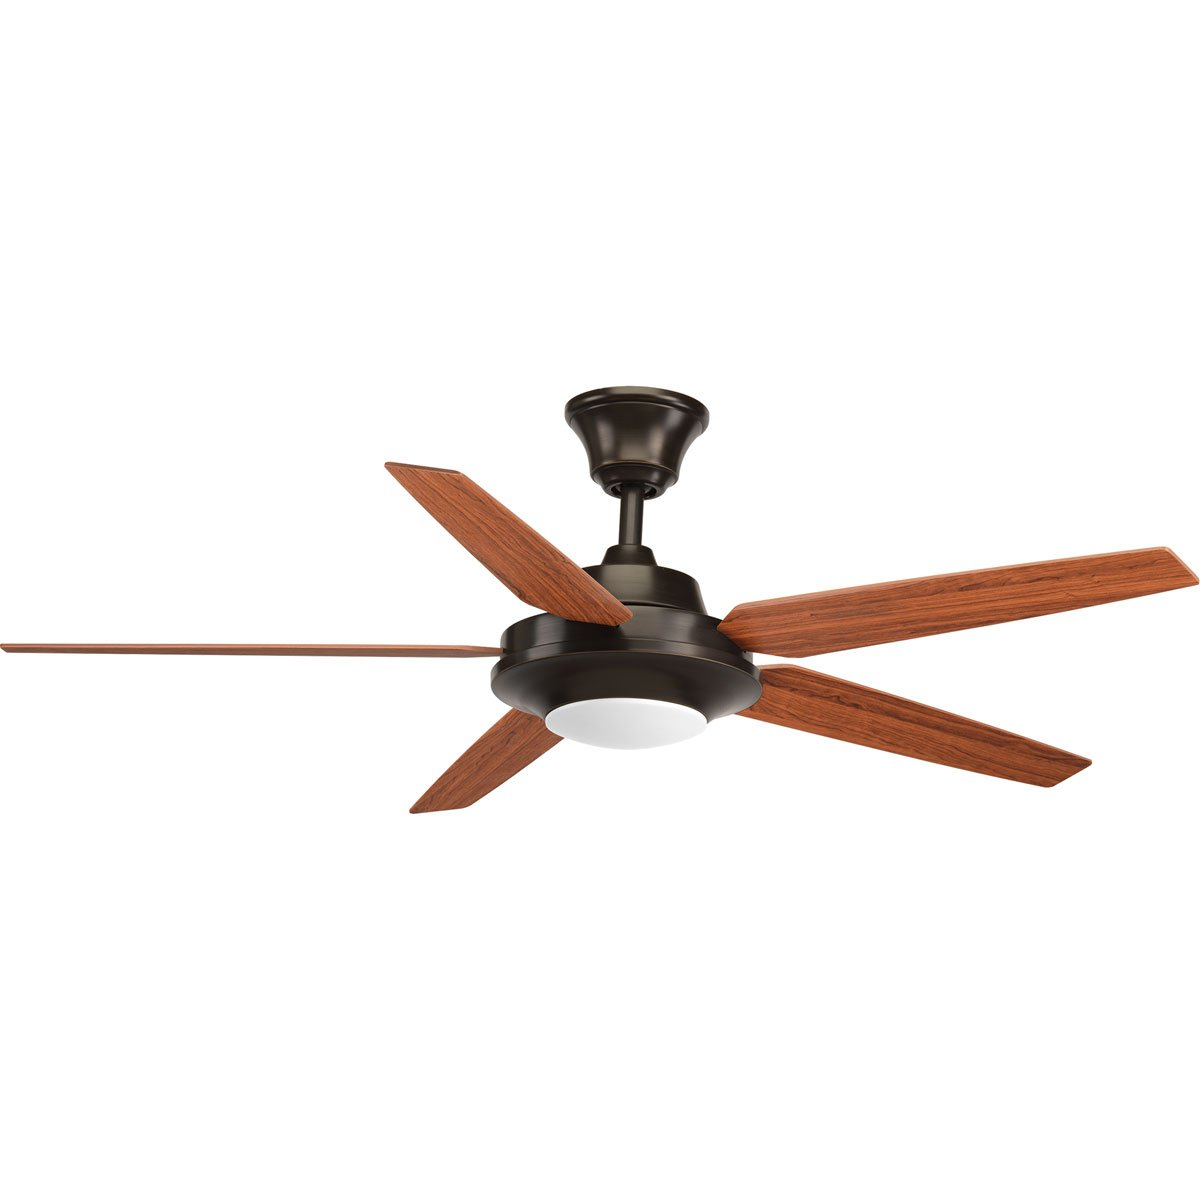 Progress Lighting P2539-2030K Contemporary Modern 54 Ceiling Fan from Signature Plus II Collection Dark Finish, Antique Bronze